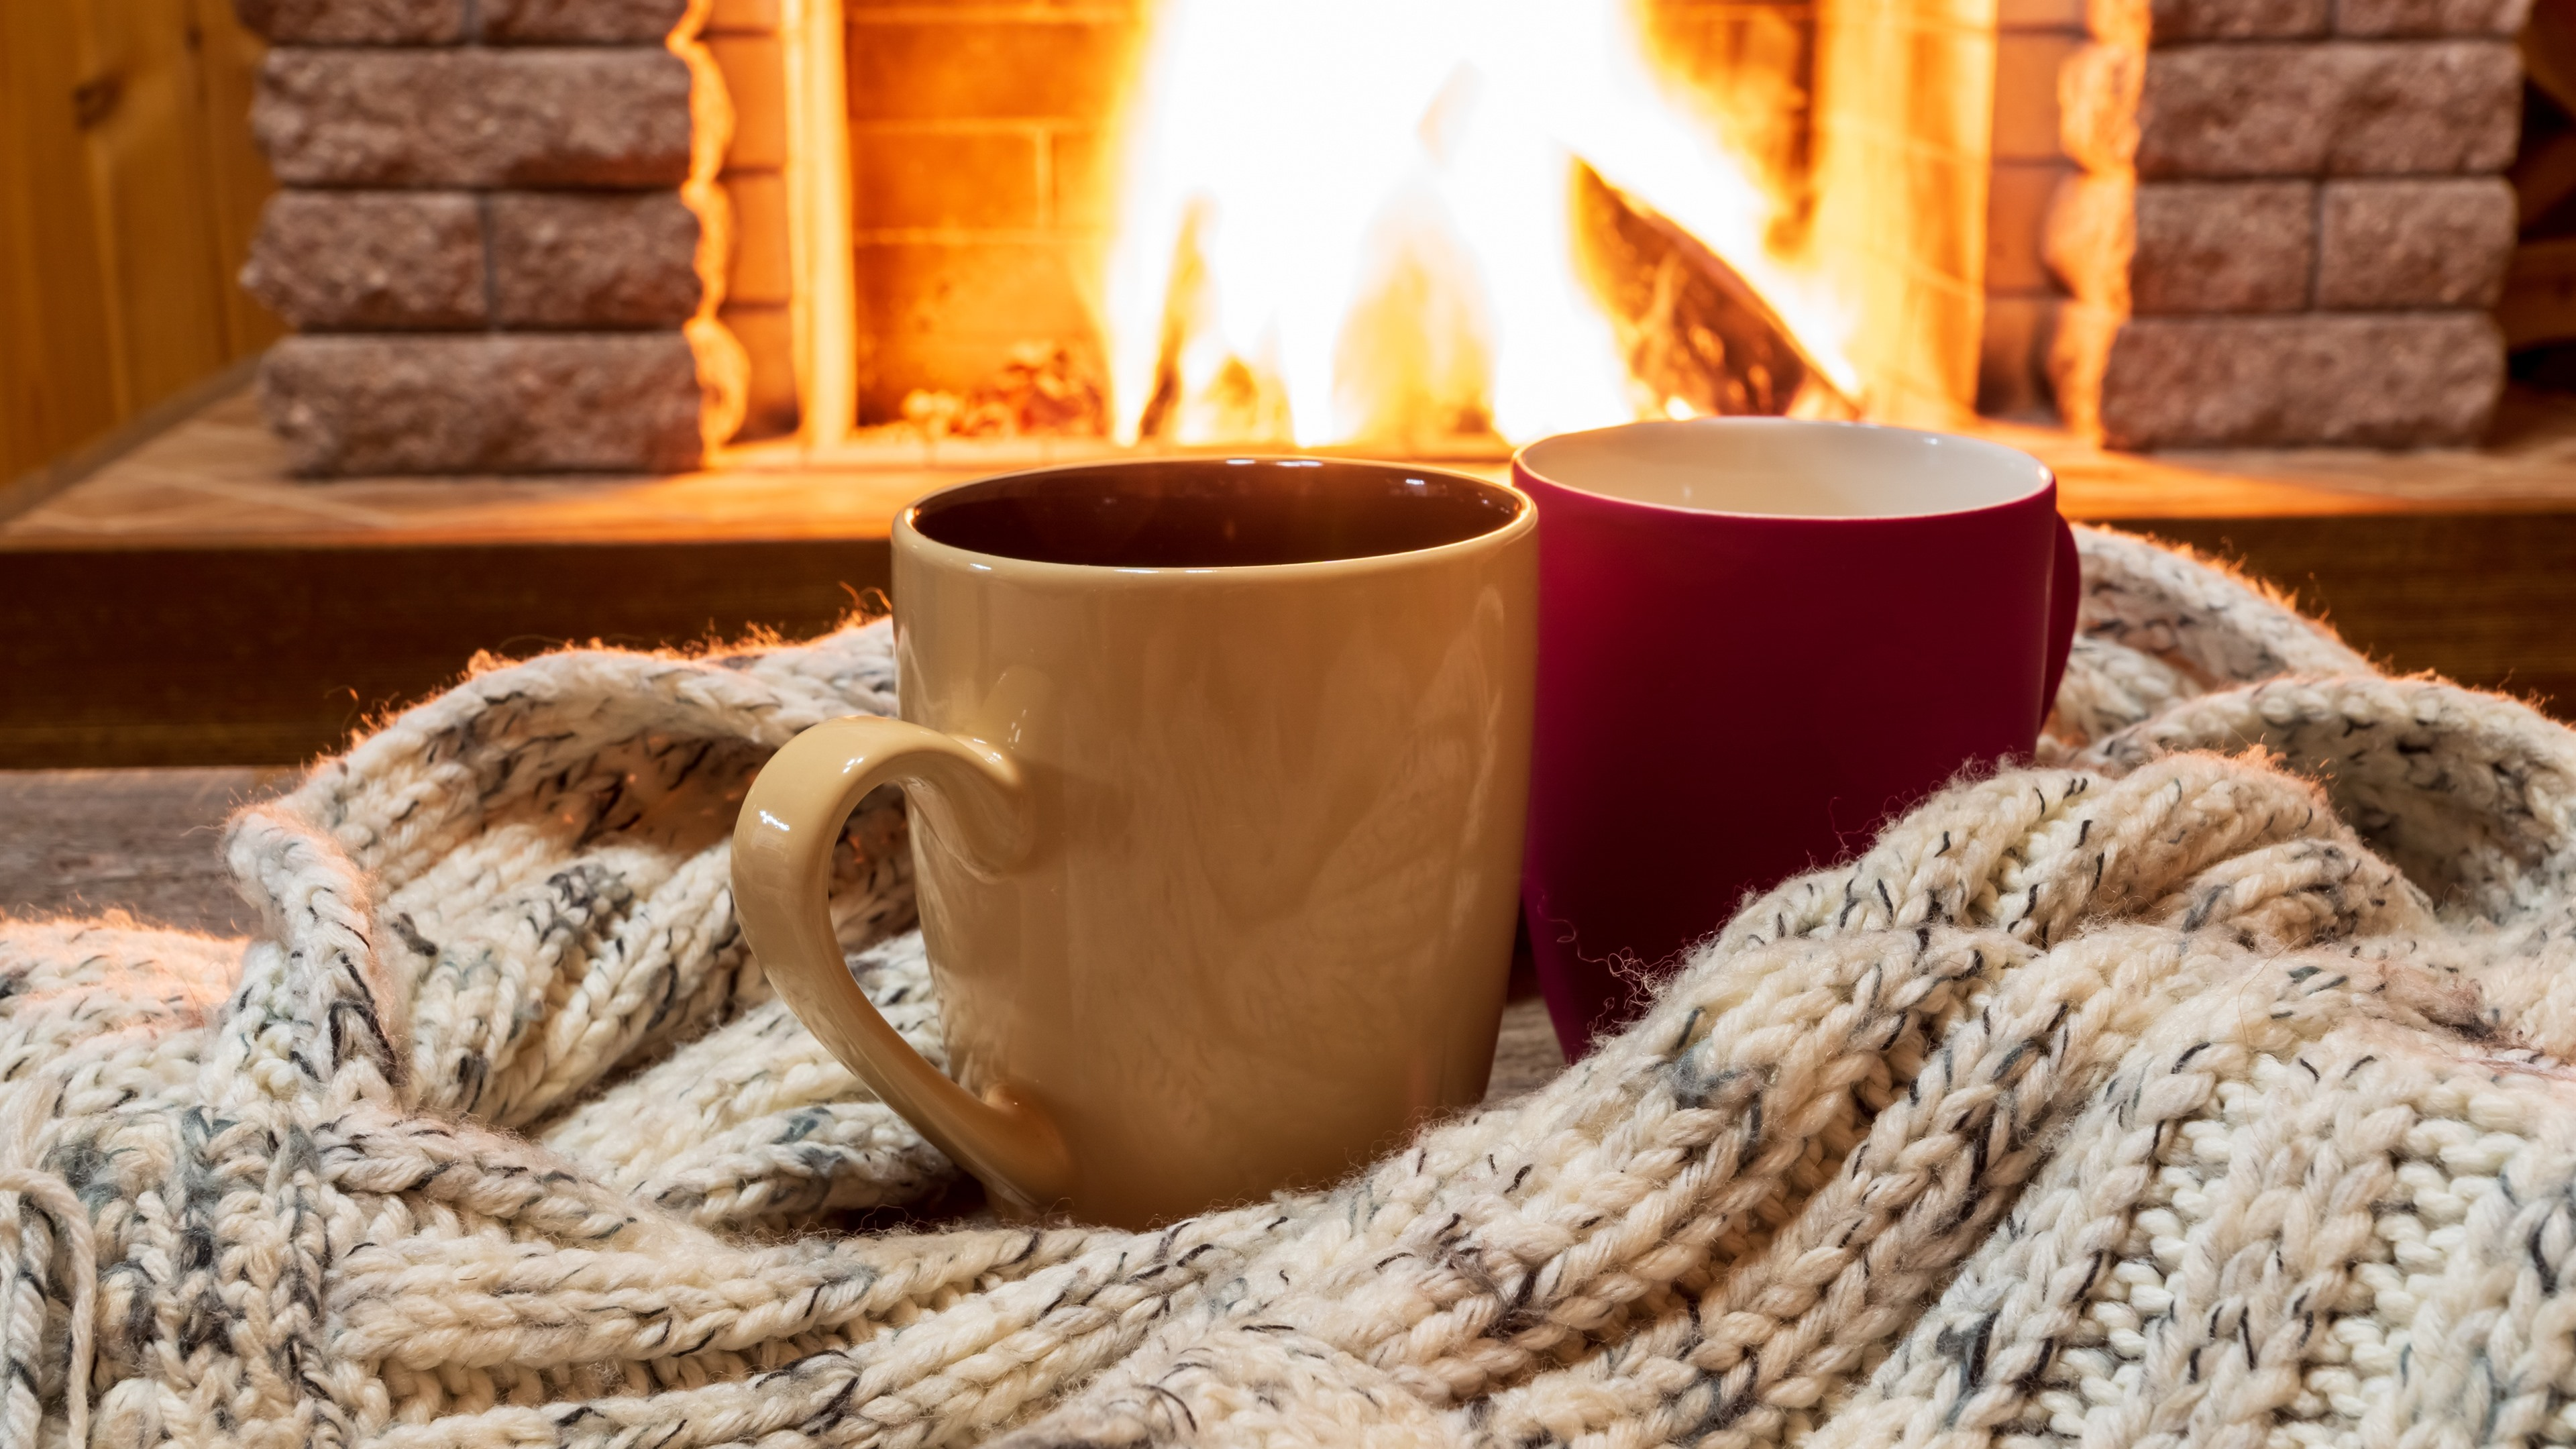 Wallpaper Two cups, sweater, fireplace 3840x2160 UHD 4K